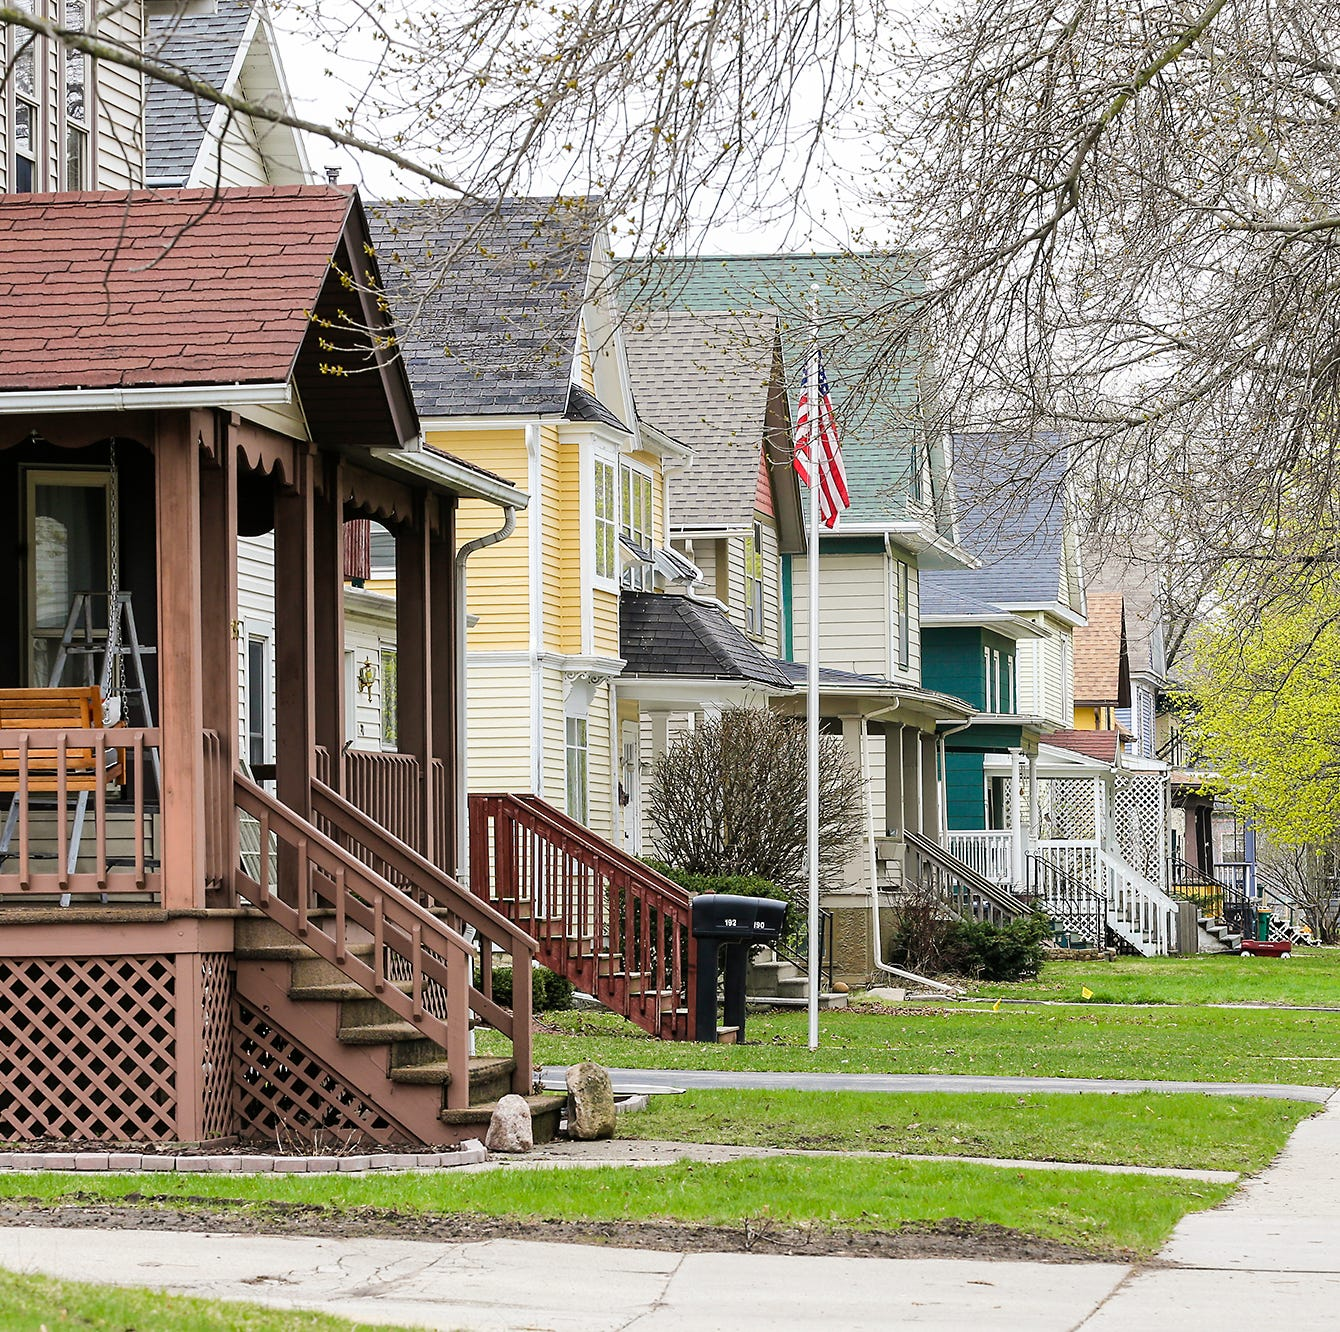 Fond du Lac home values increase 11% on average after city-wide reassessment